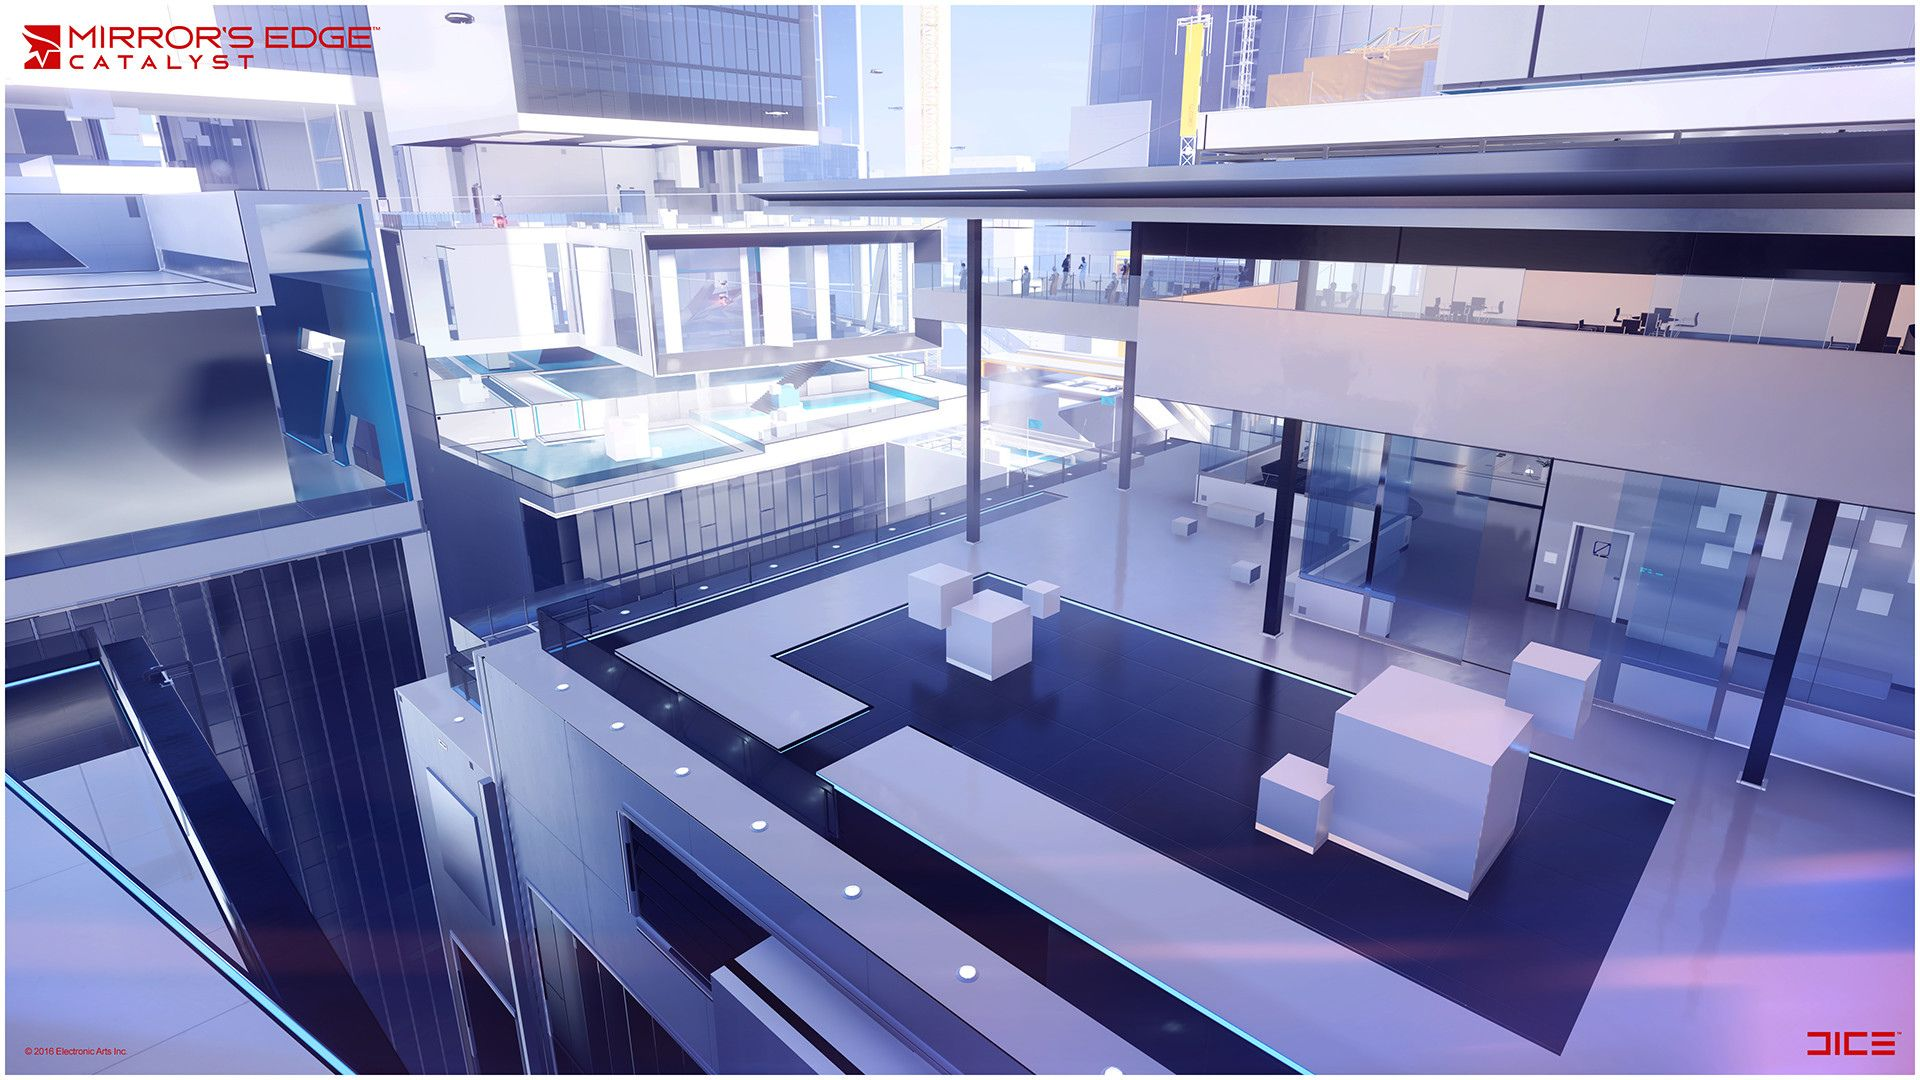 Video Game Mirror S Edge Catalyst Wallpaper With Images